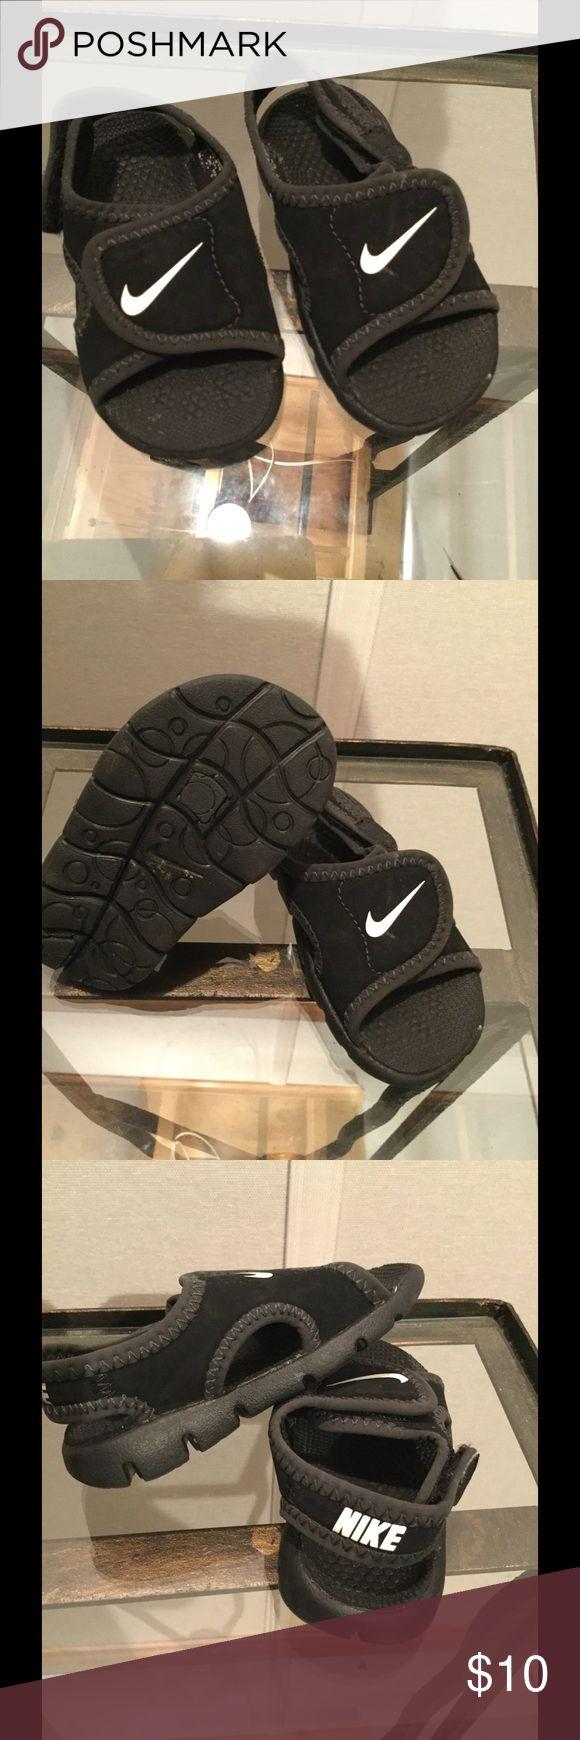 Kids Nike Velcro sandal Cute Nike Velcro sandal worn maybe 3 times ....size chart on these are a infant 3 Nike Shoes Sandals & Flip Flops